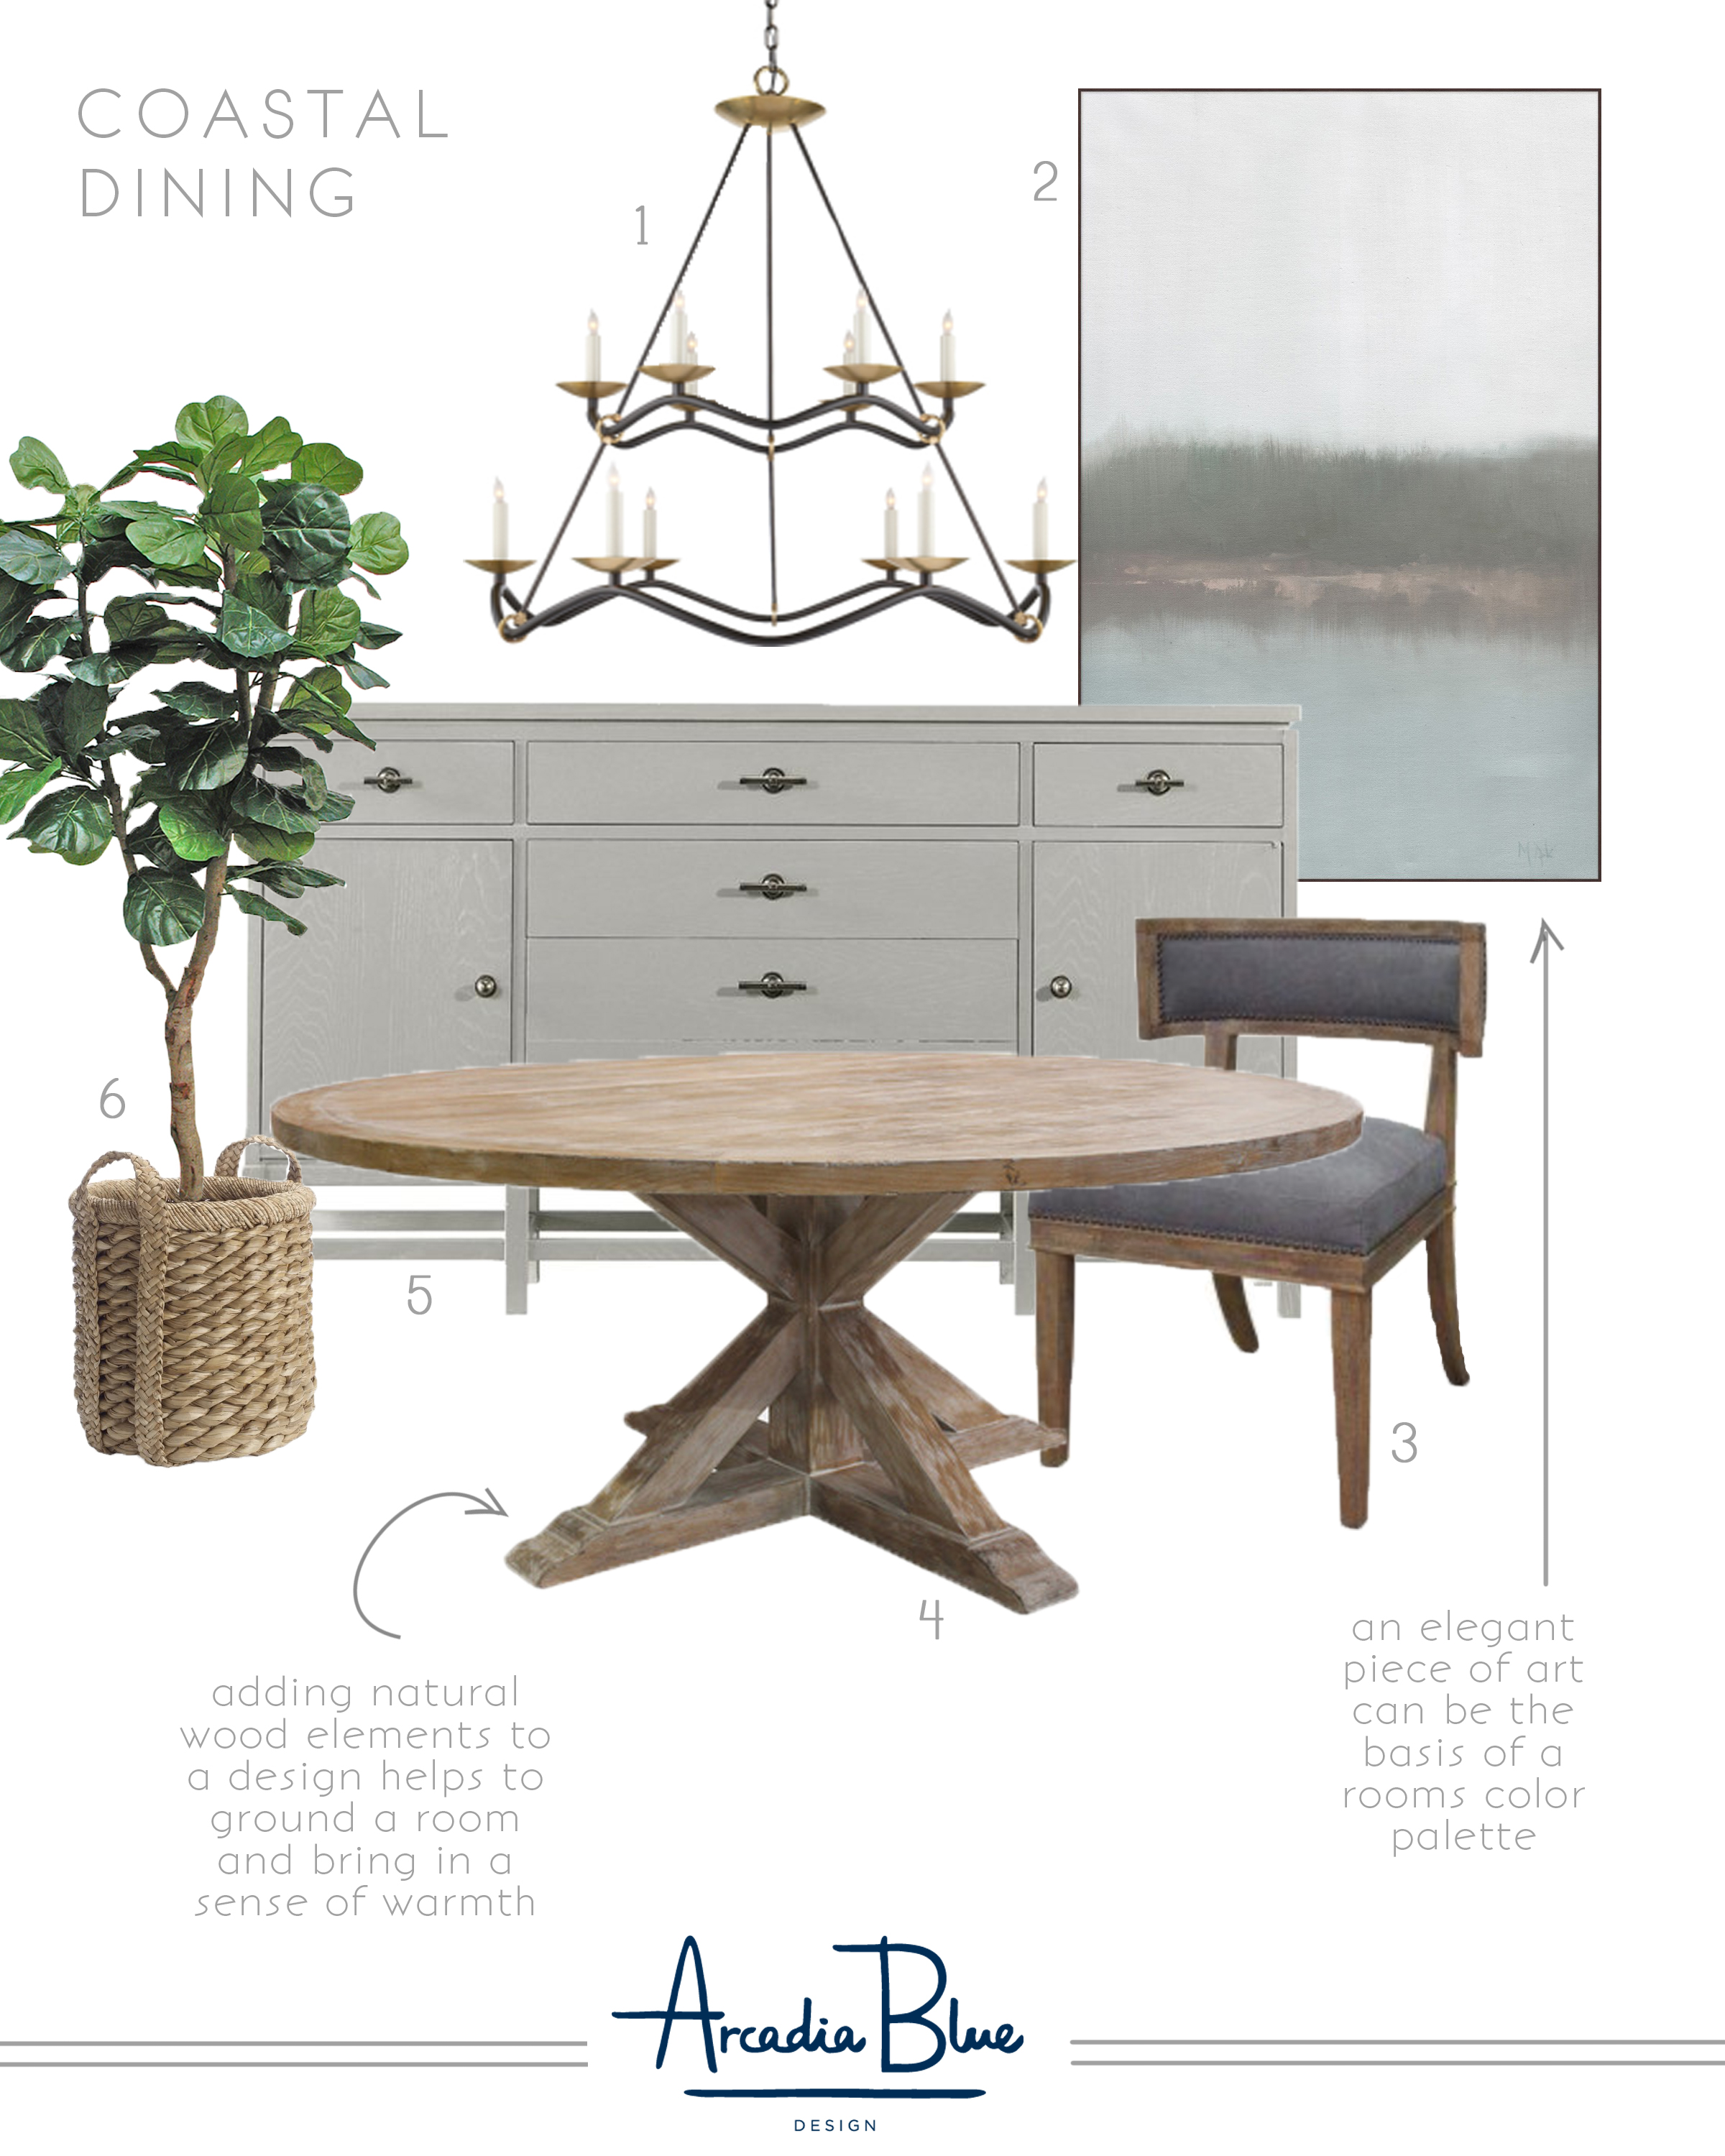 Arcadia Blue_Coastal Dining_Design Board